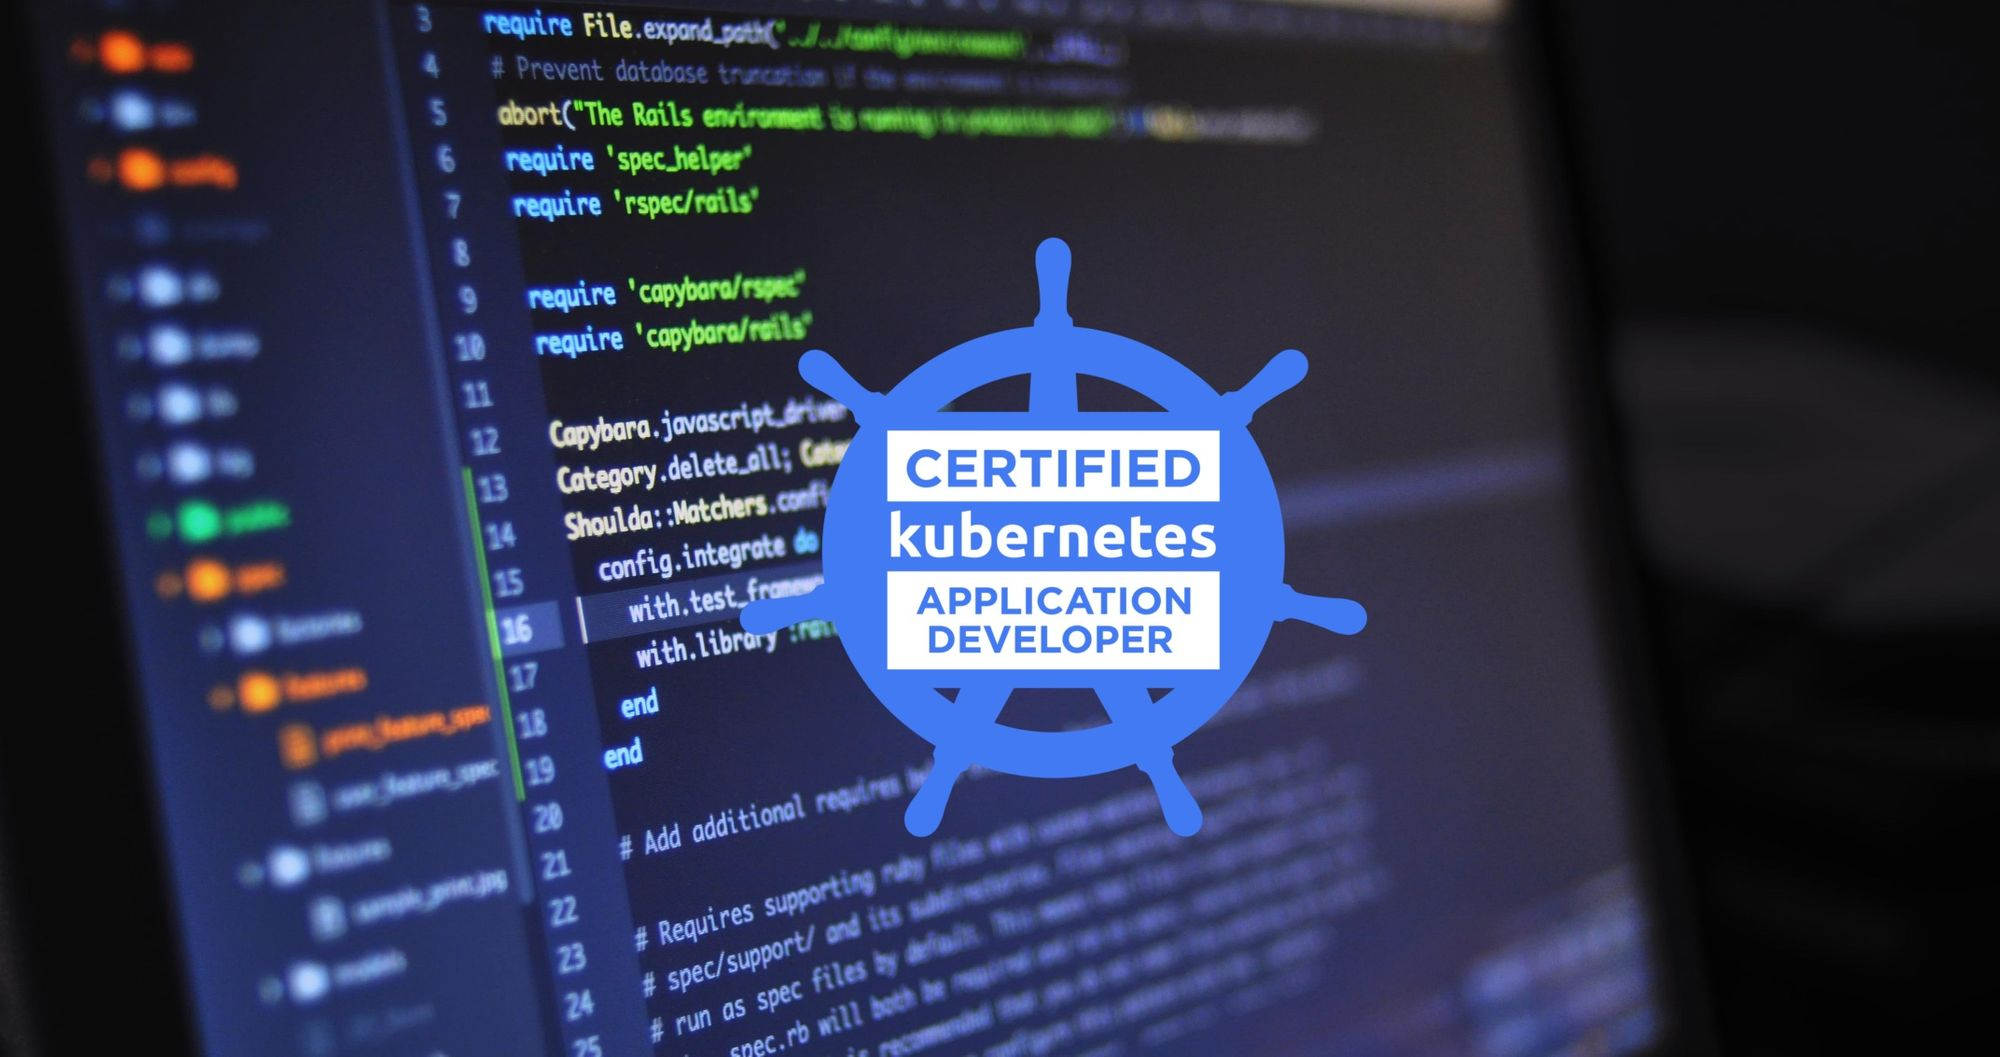 Preparing for Certified Kubernetes Application Developer (CKAD)